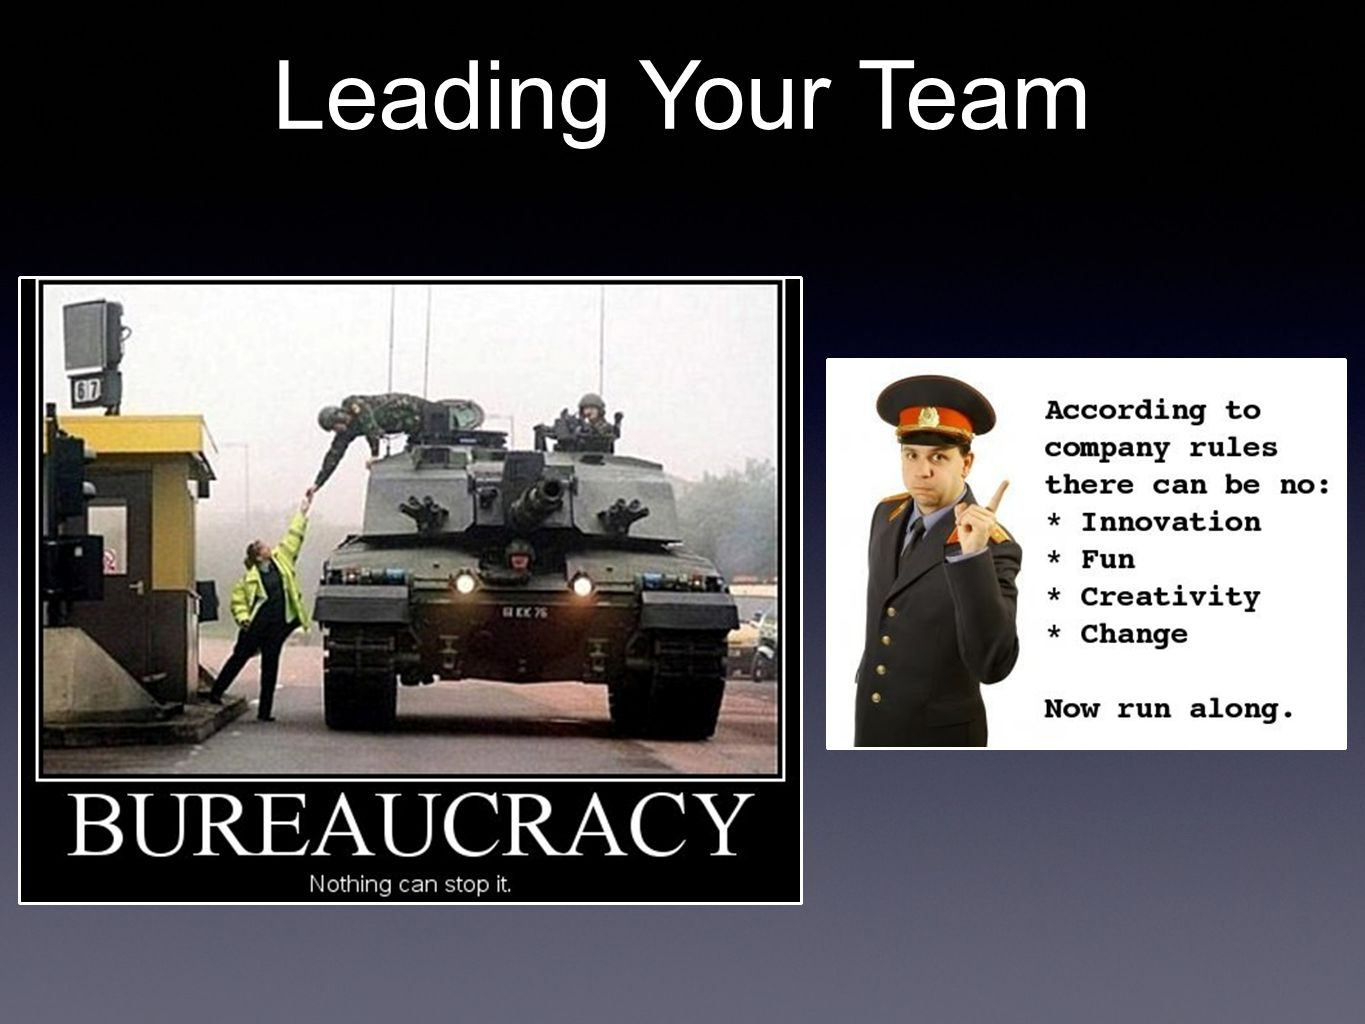 Stand with them, not above them. Leading Your Team